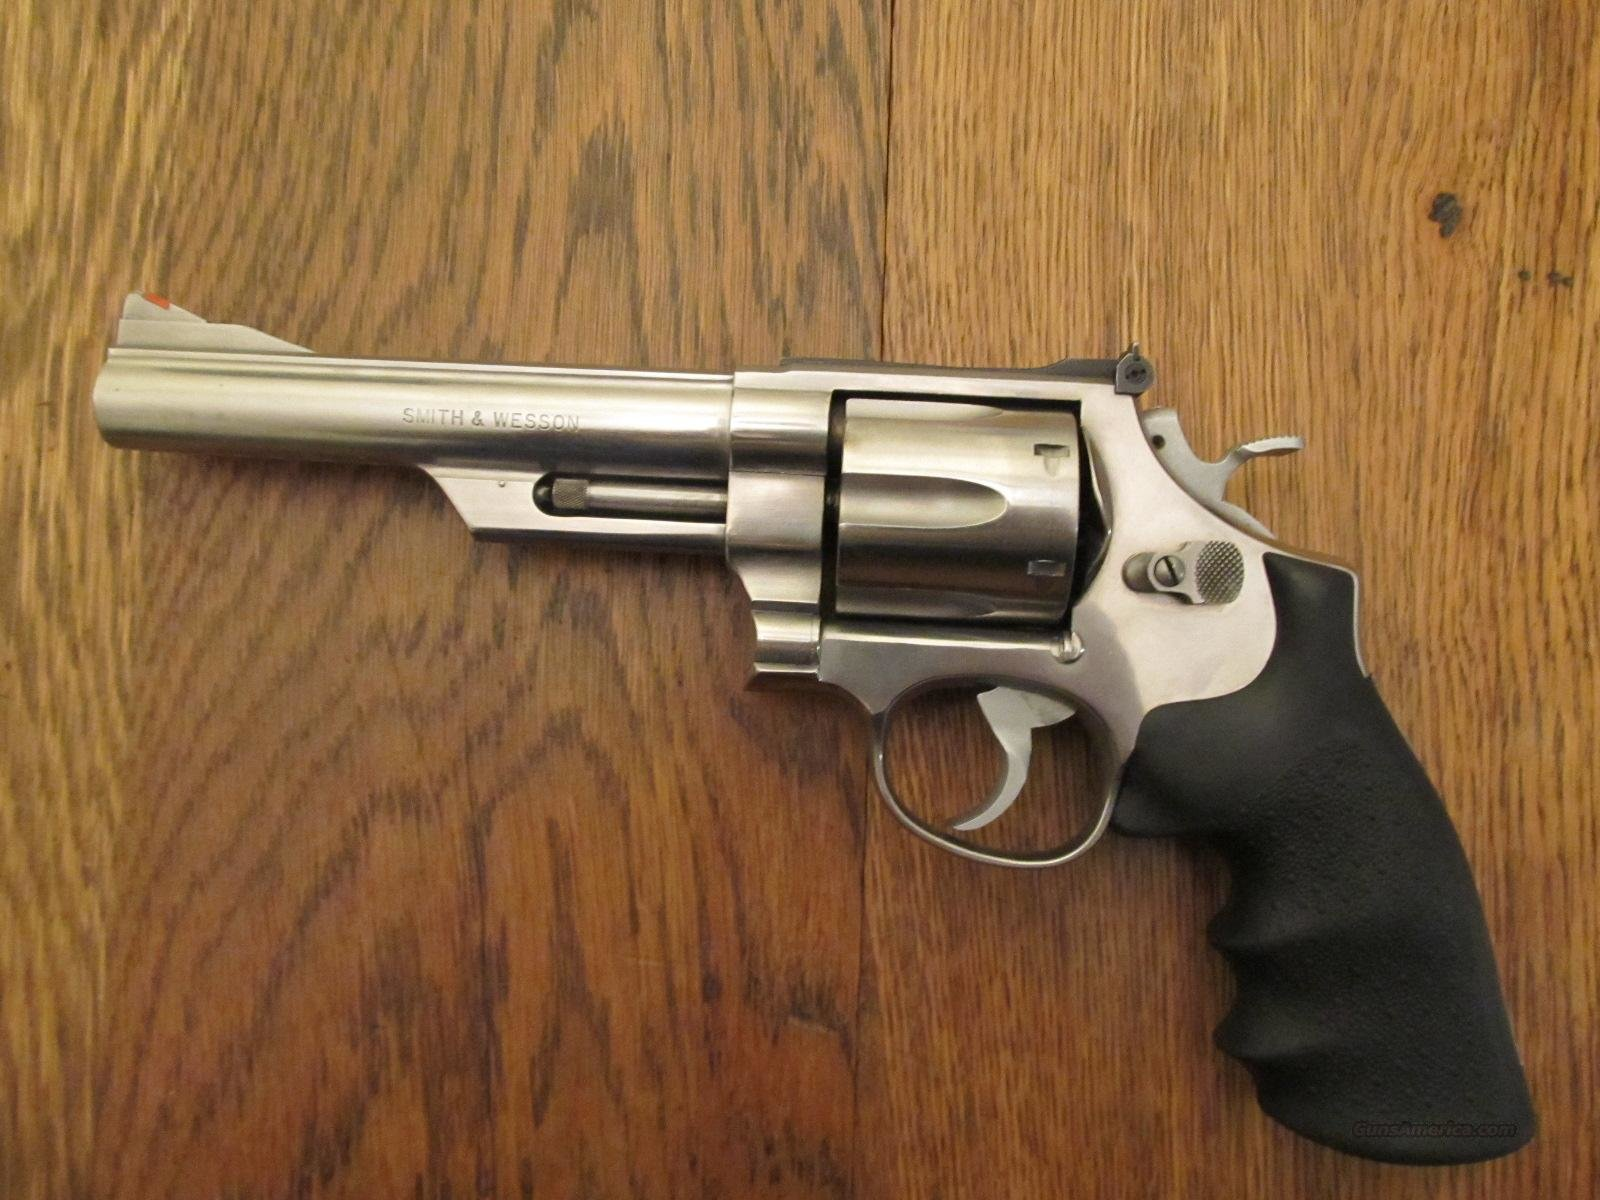 smith & wesson 629-1 6inch  Guns > Pistols > Smith & Wesson Revolvers > Model 629